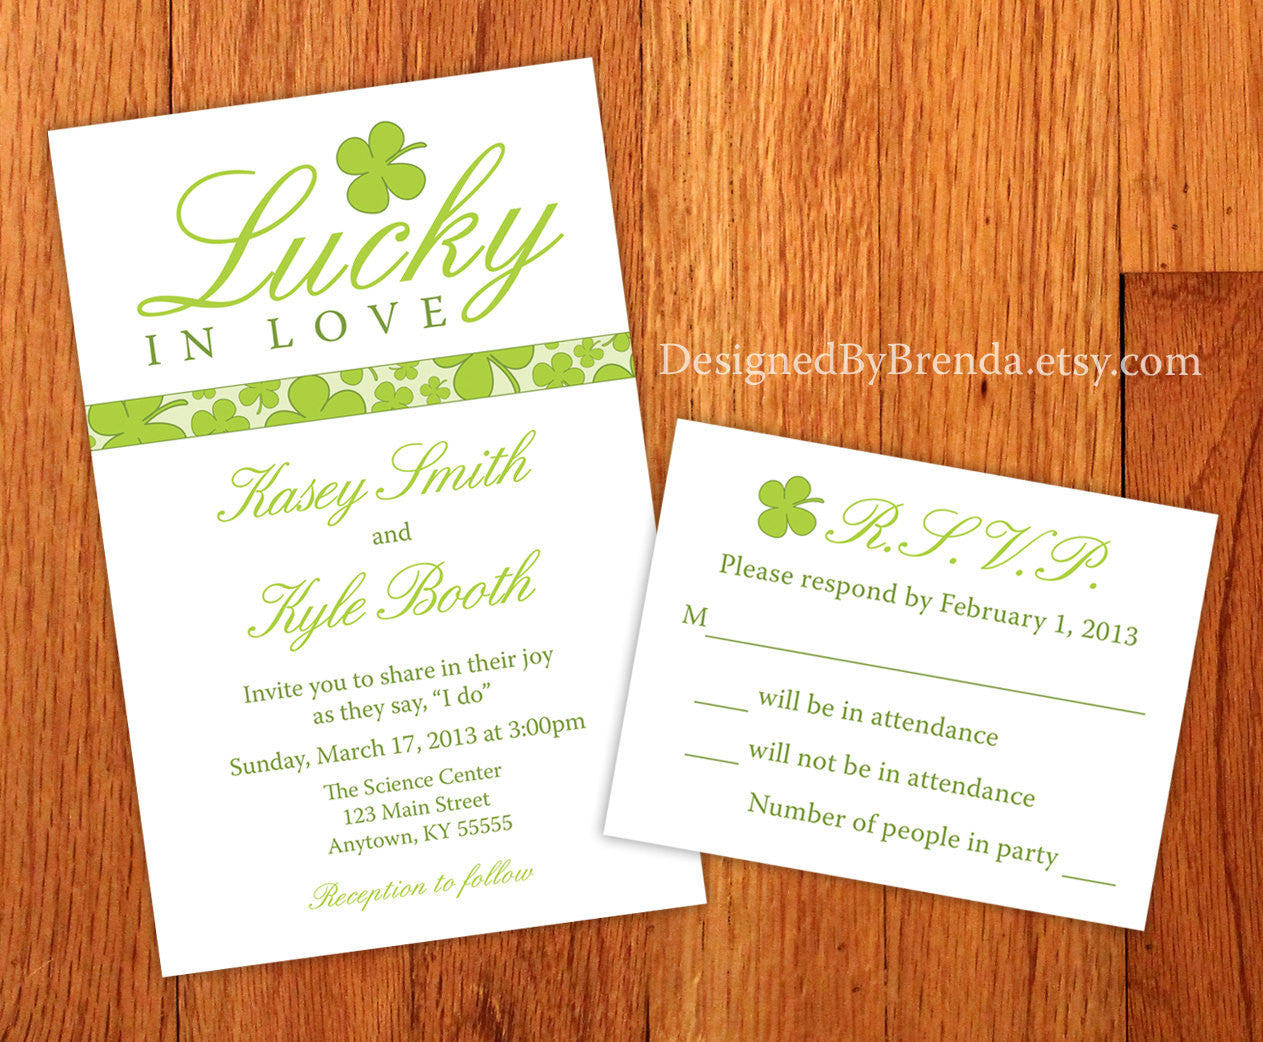 Green Shamrock Lucky in Love Wedding Invitations – Designed By Brenda